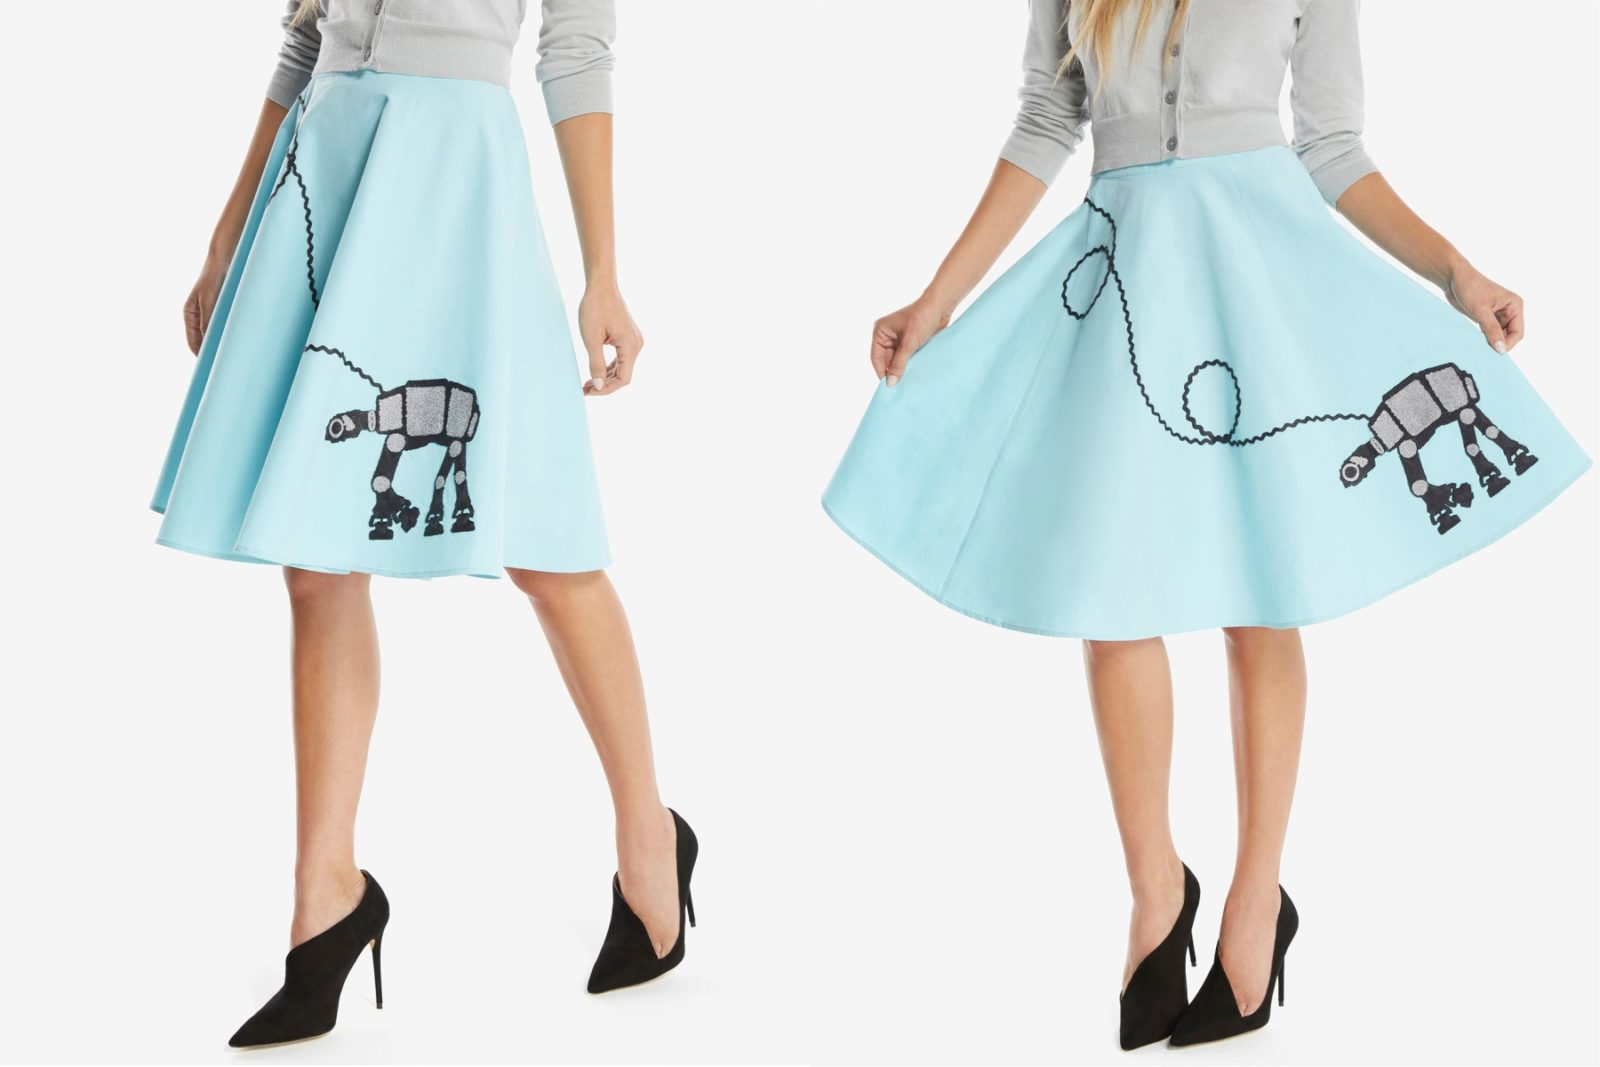 Women's Her Universe x Star Wars Imperial AT-AT skirt at Box Lunch